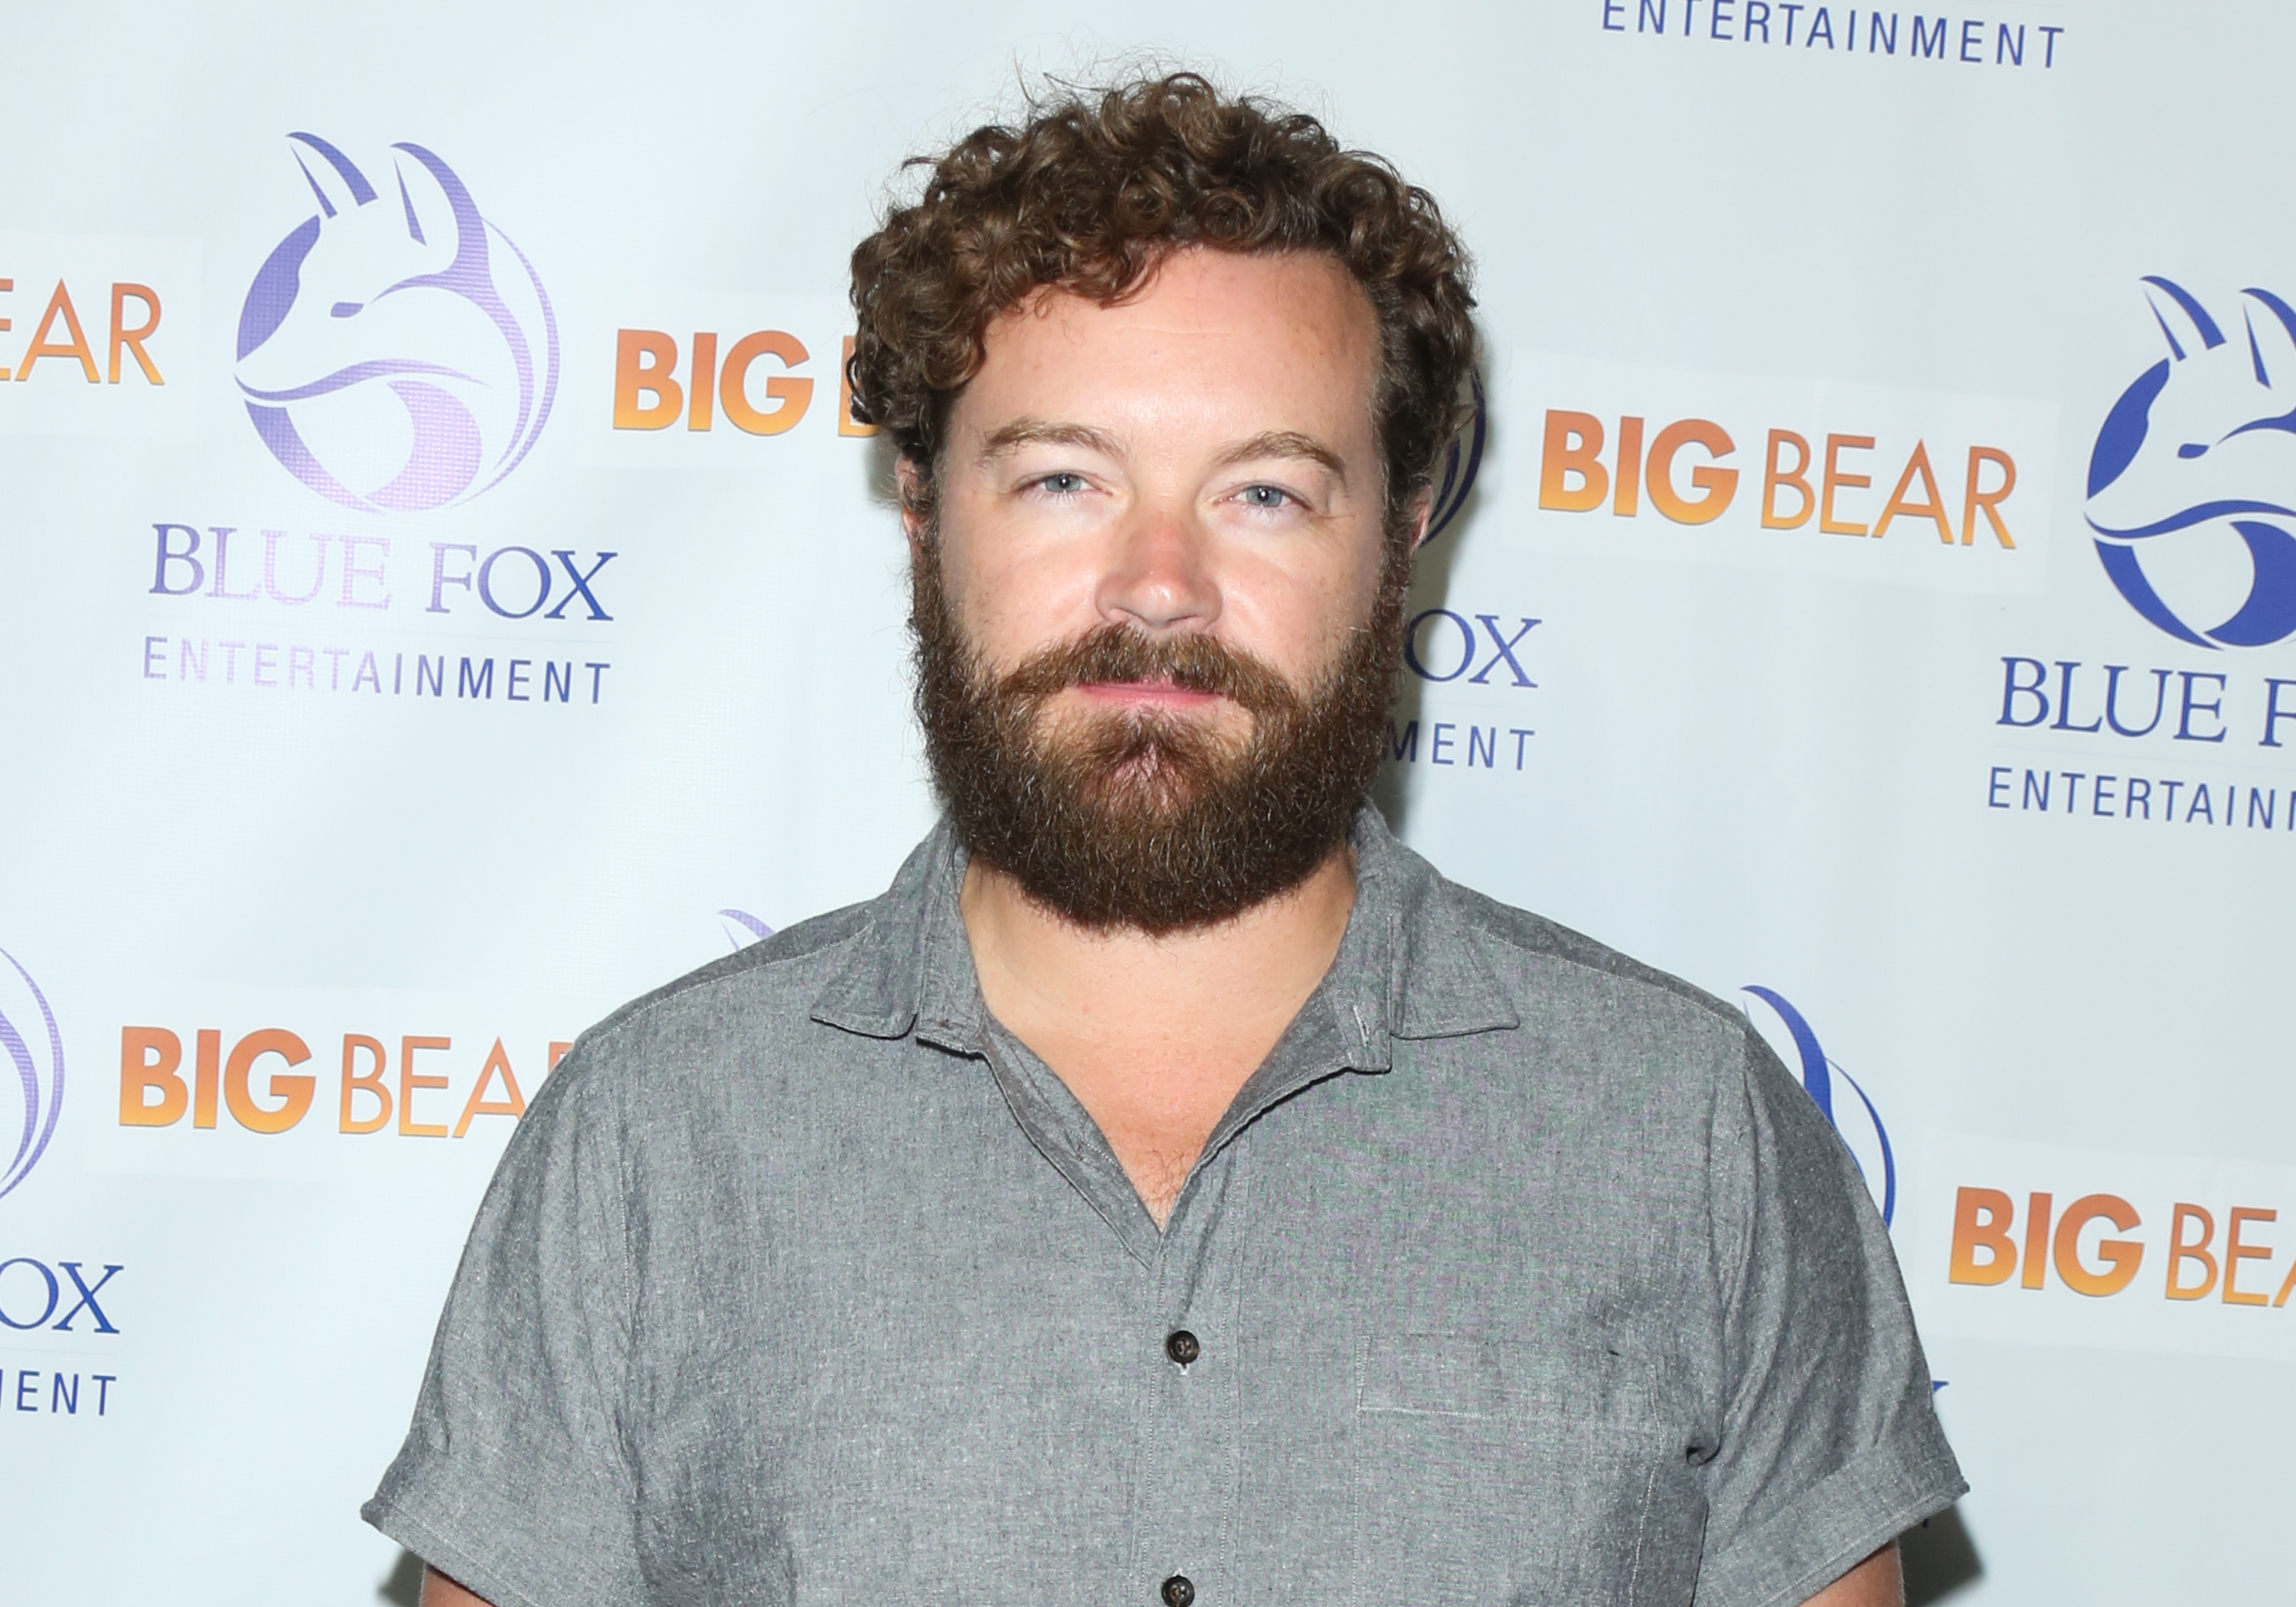 Judge Denies Dismissing Rape Charges Against Actor Danny Masterson